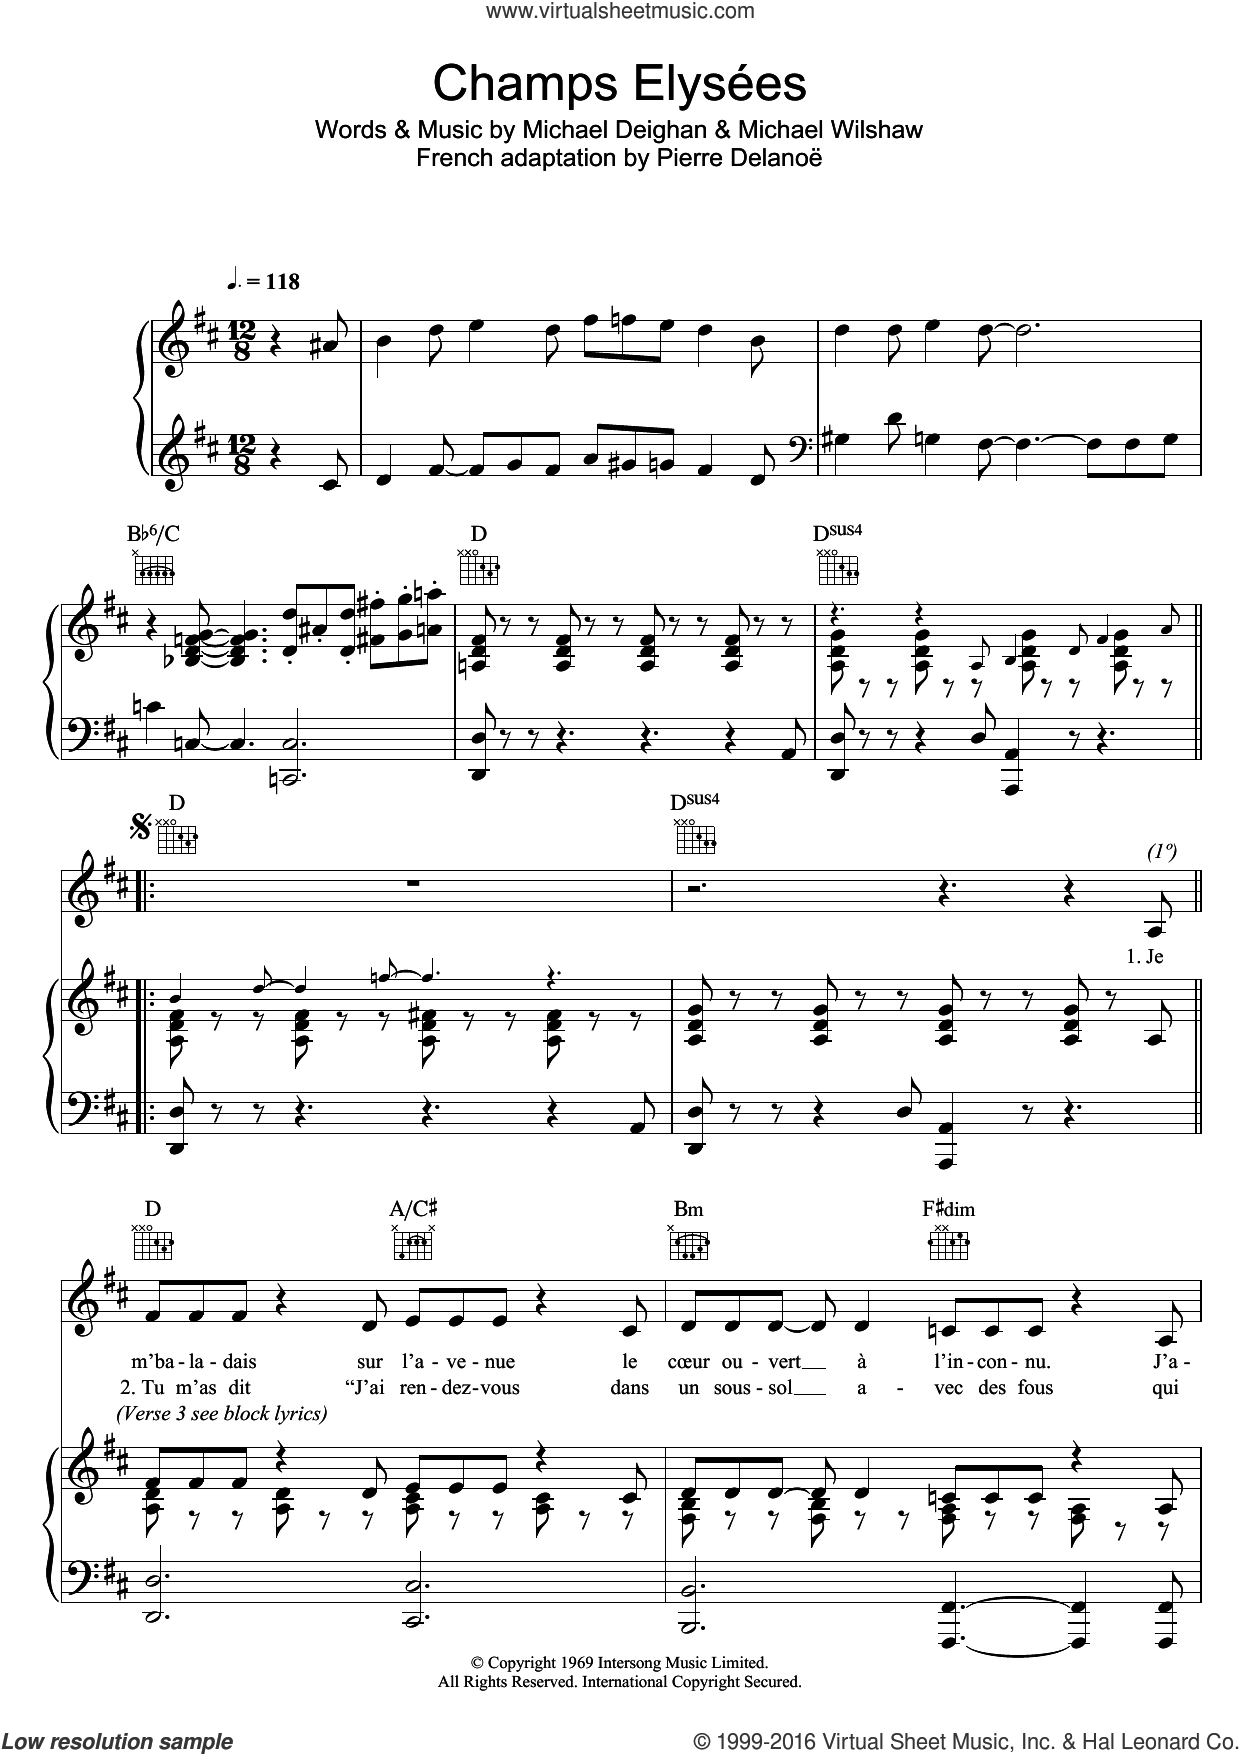 Champs Elysees sheet music for voice, piano or guitar by Michael Wilshaw and Michael Deighan. Score Image Preview.